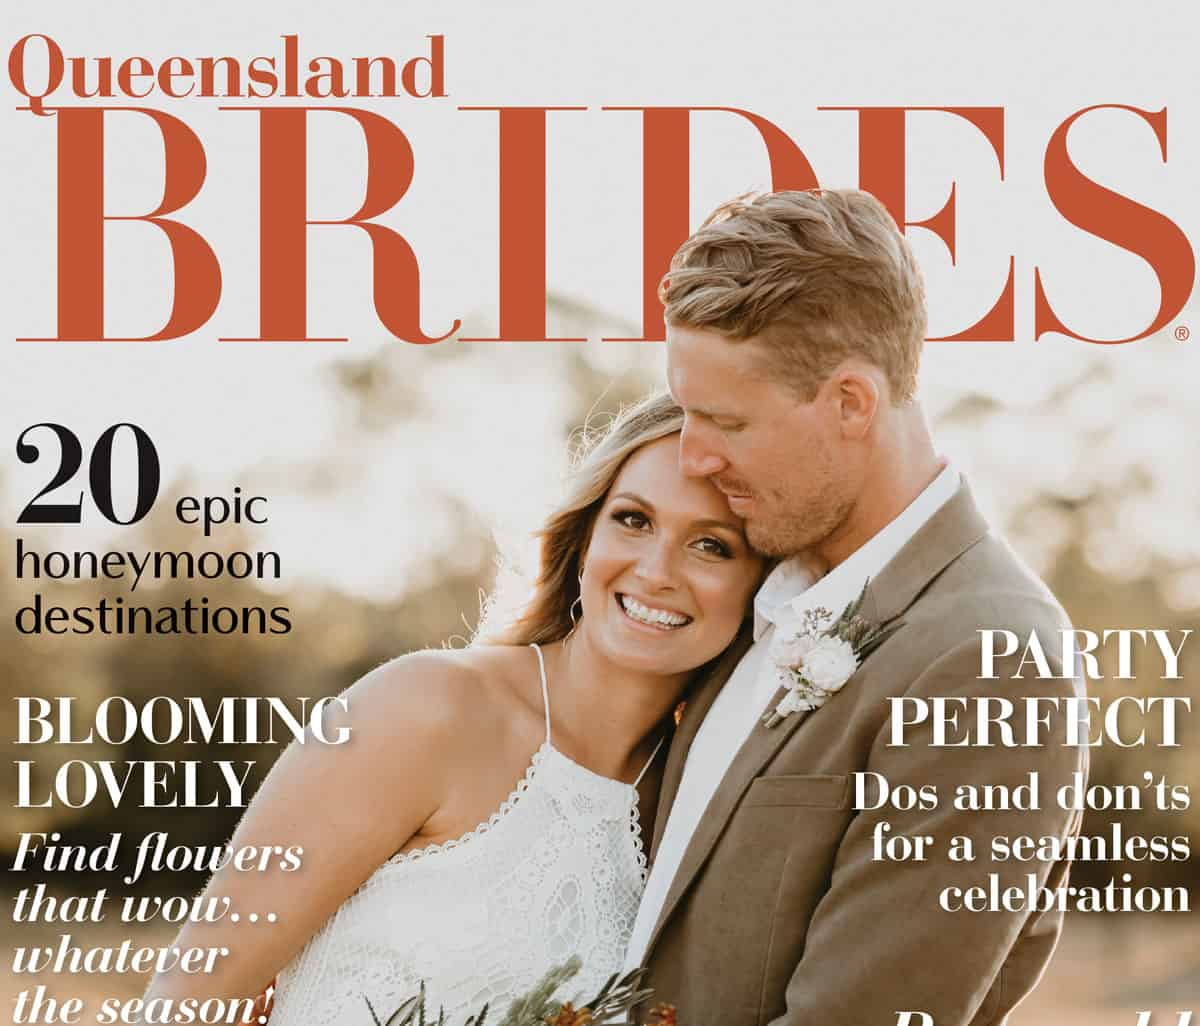 2020 edition of Queensland Brides magazine